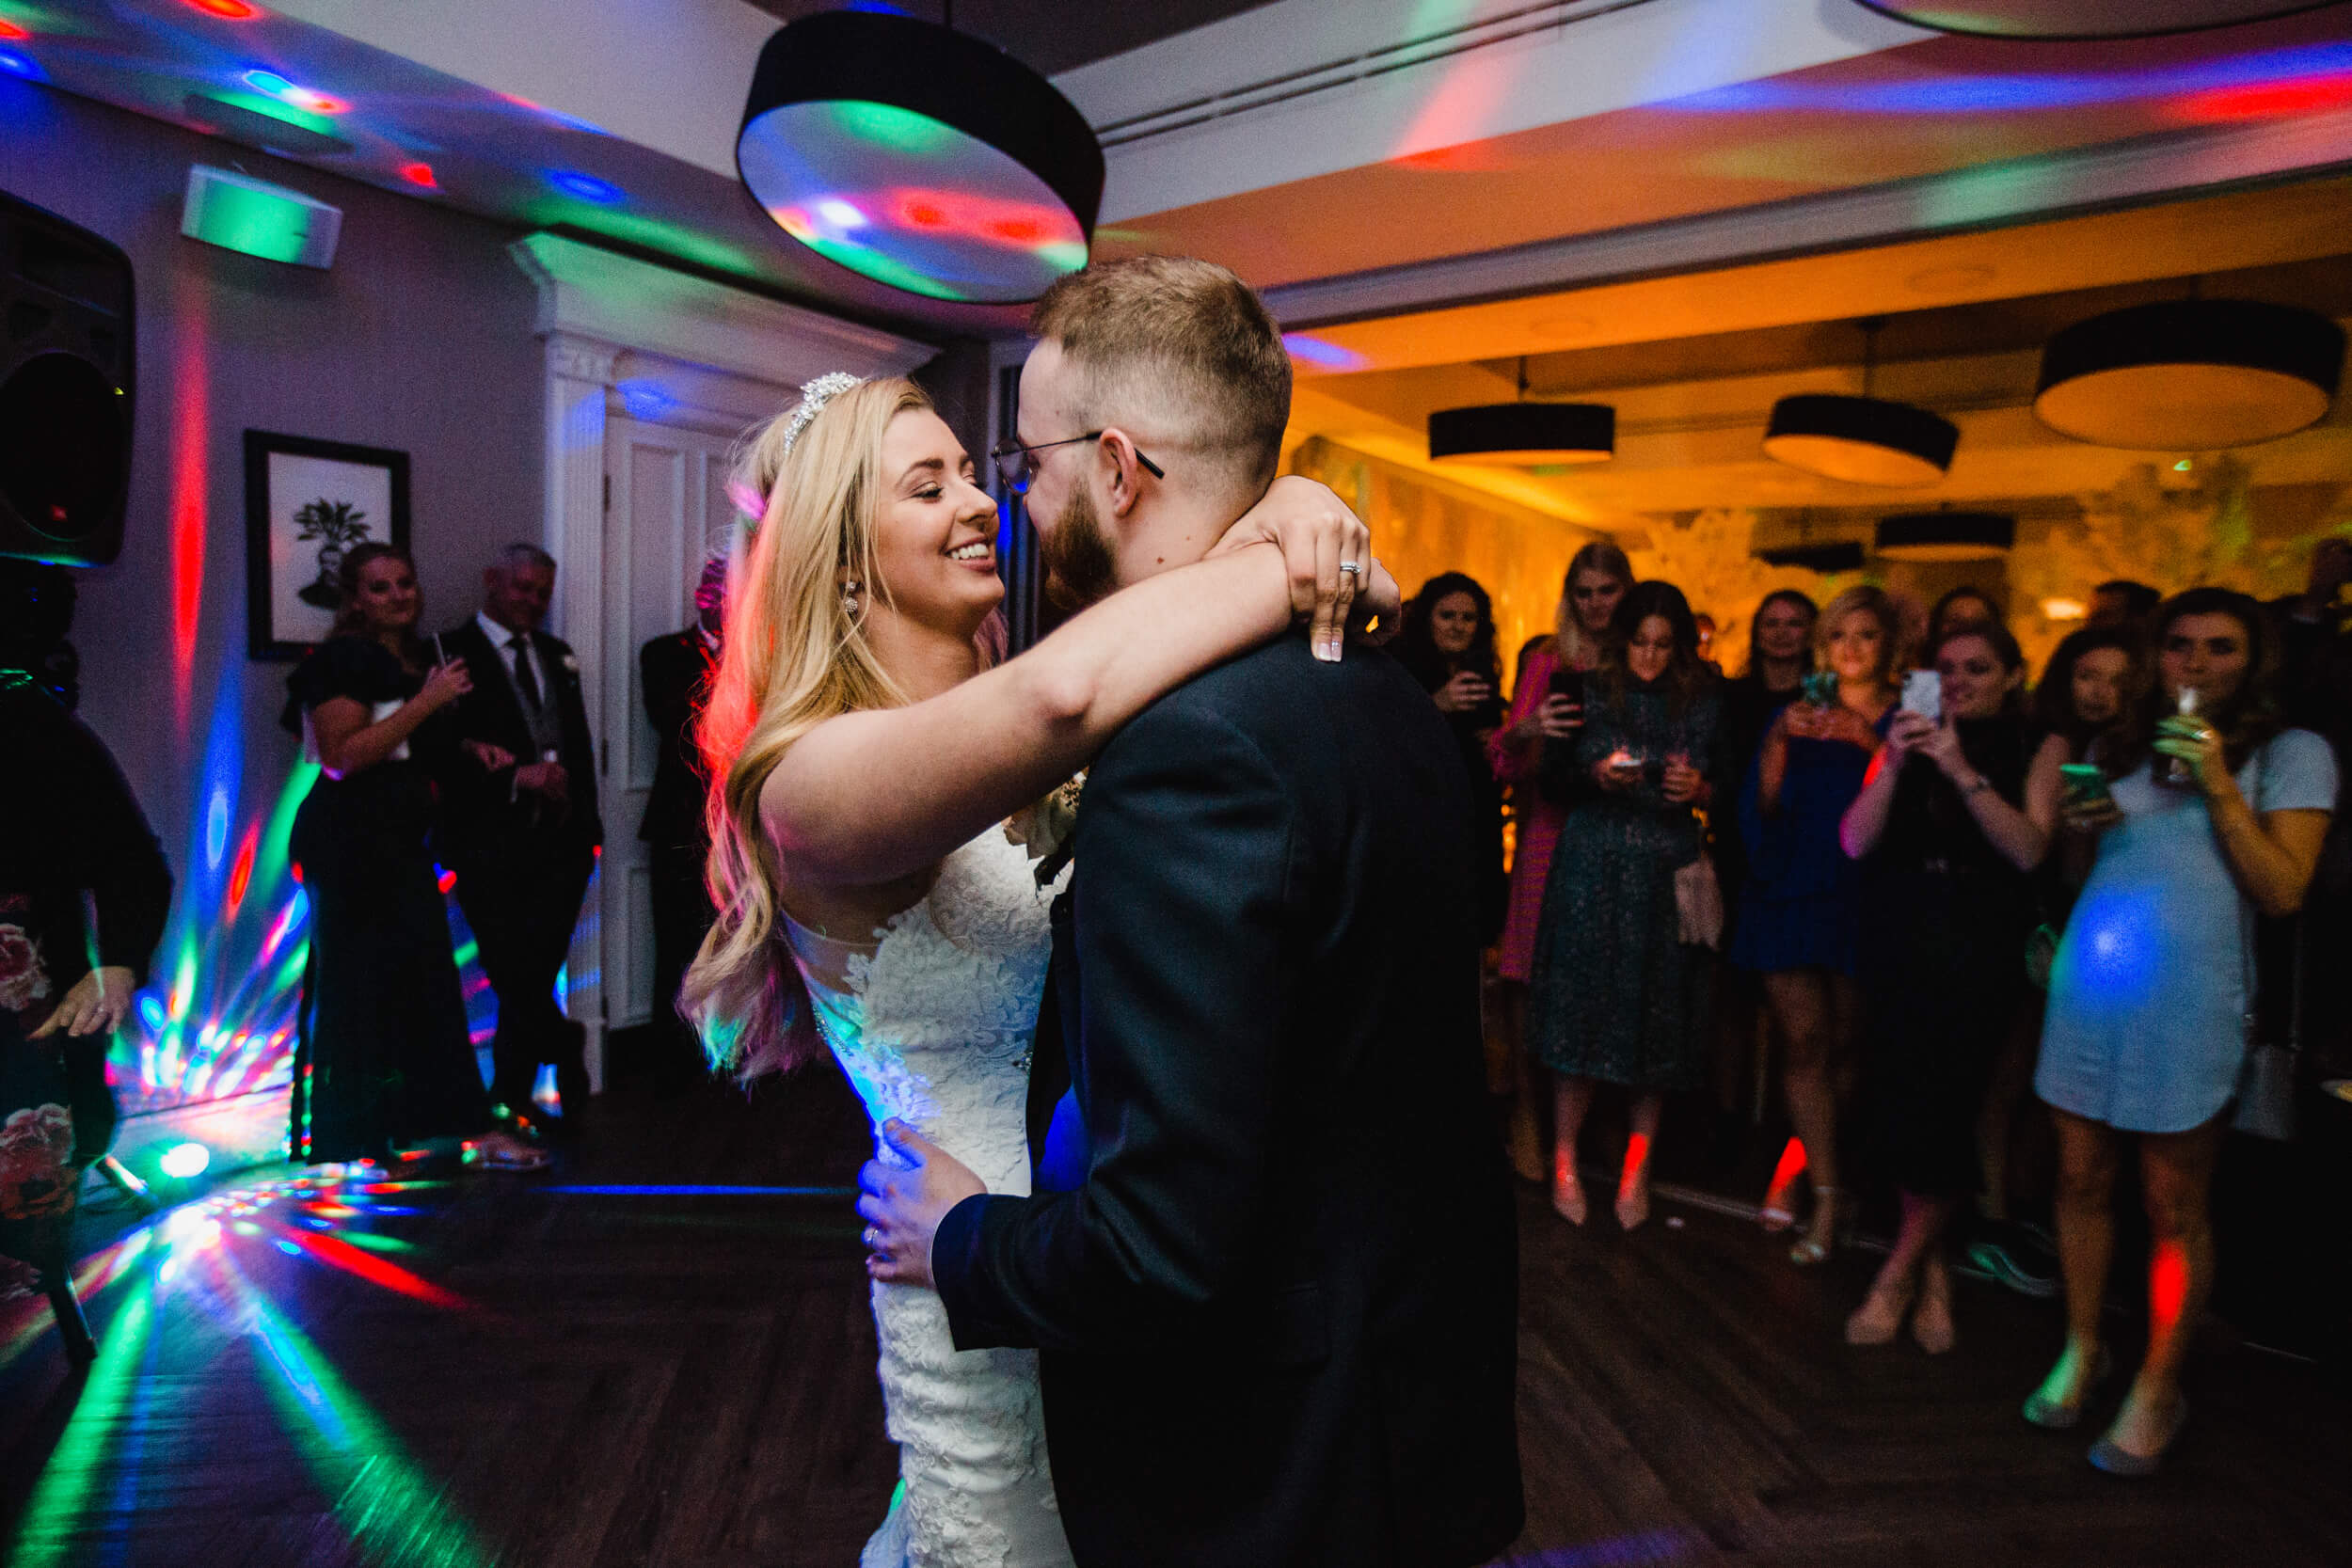 close up photograph of bride holding groom during first dance